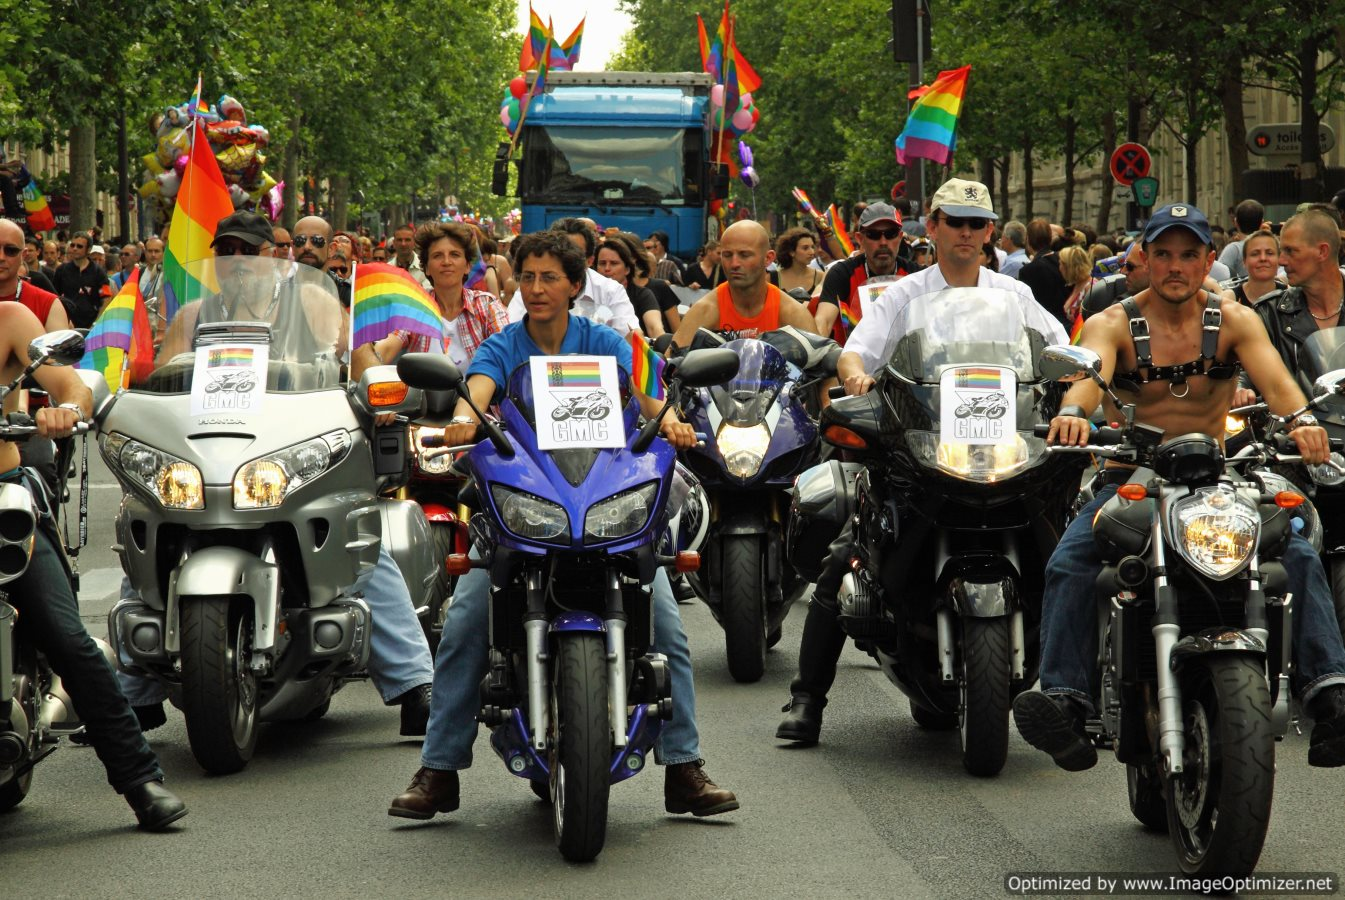 French Lawmakers Approve Same-Sex Marriage Bill